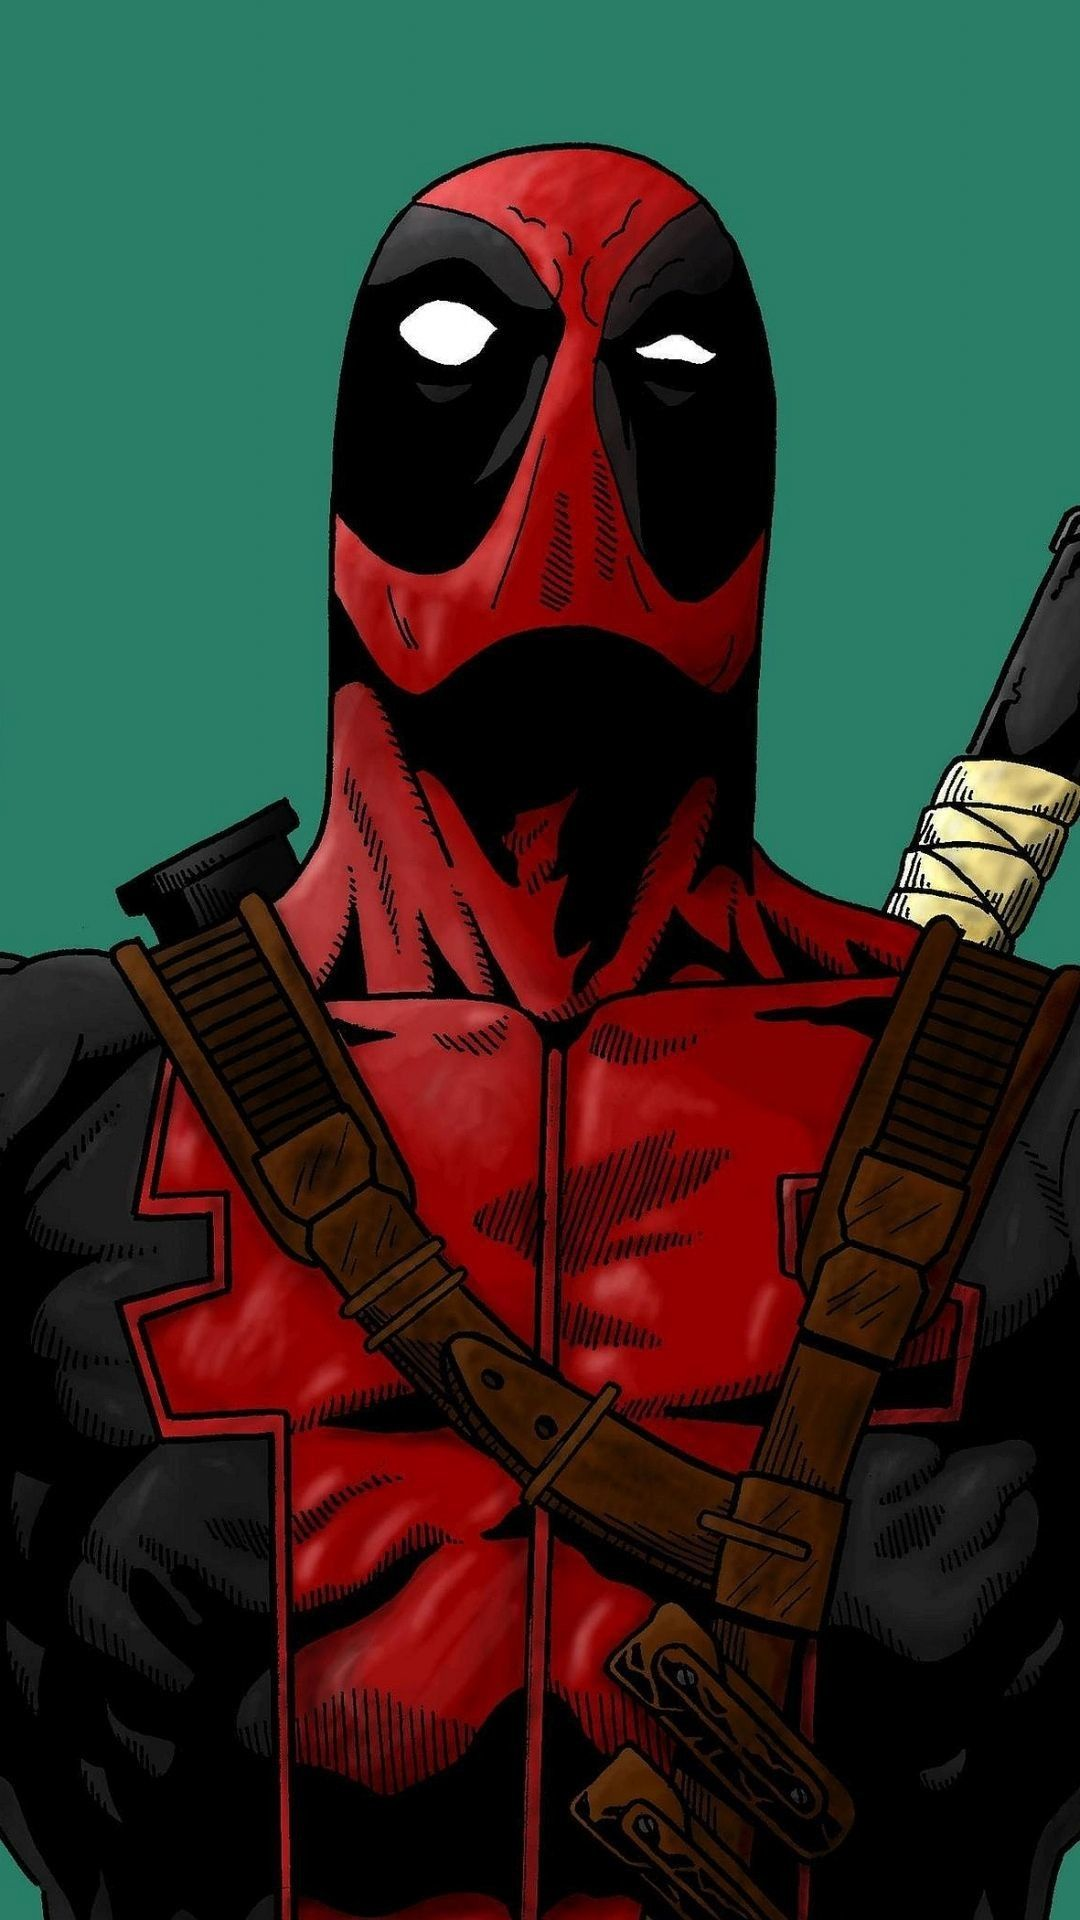 Funny Deadpool Iphone Background in 2020 Deadpool